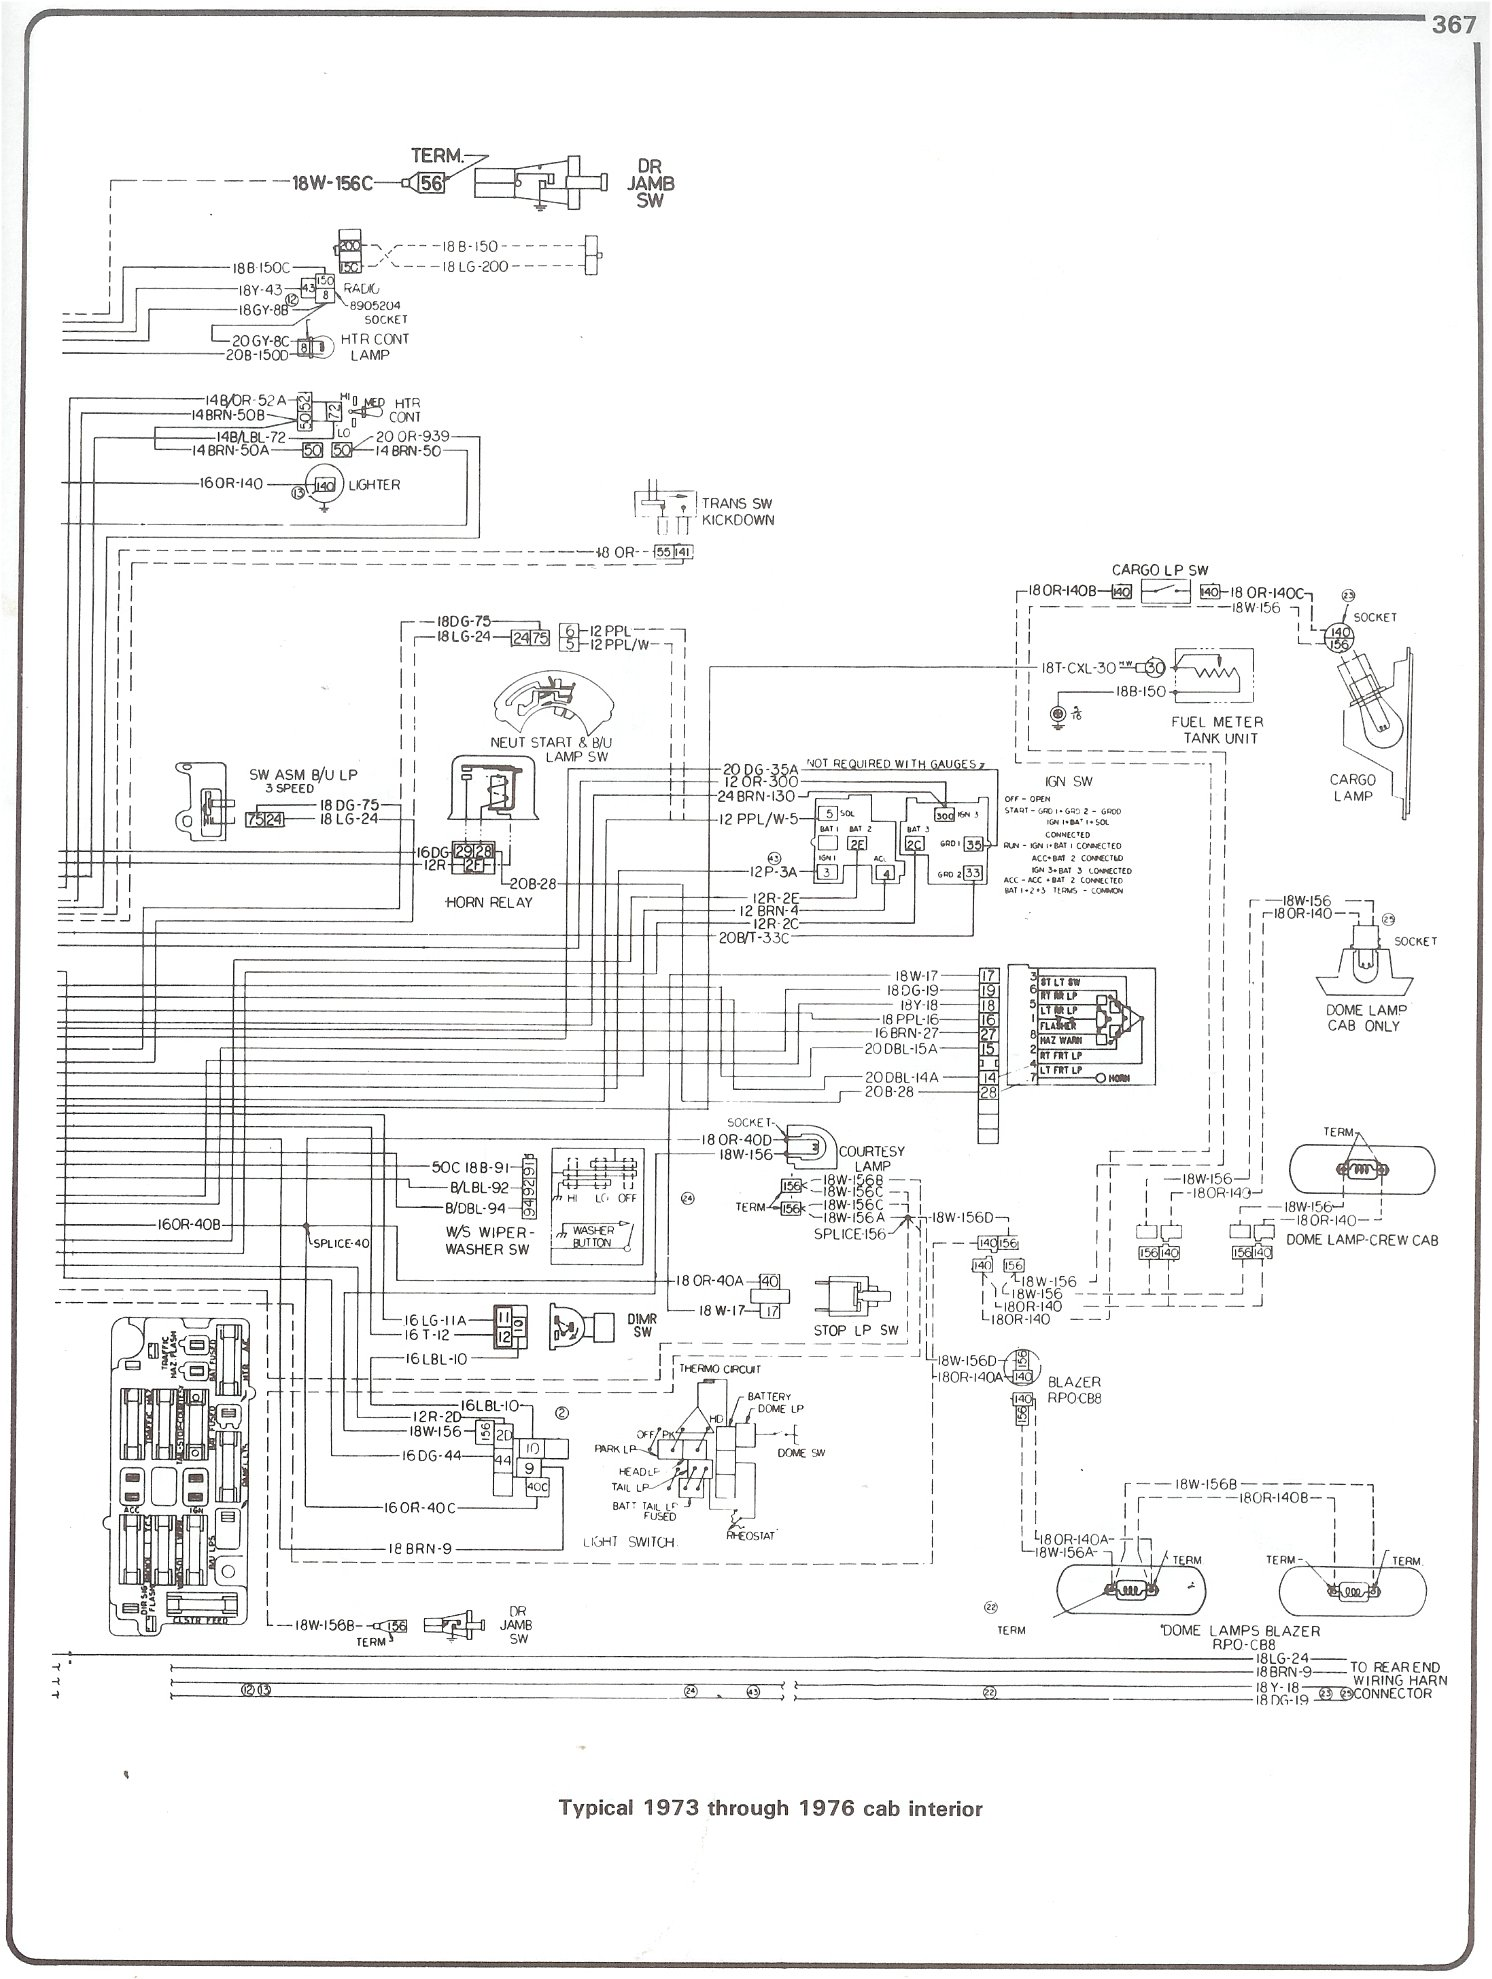 73 76_cab_inter 1973 chevy truck wiring diagram 1973 chevy truck oil cooler \u2022 free 1967 gmc pickup wiring diagram at panicattacktreatment.co